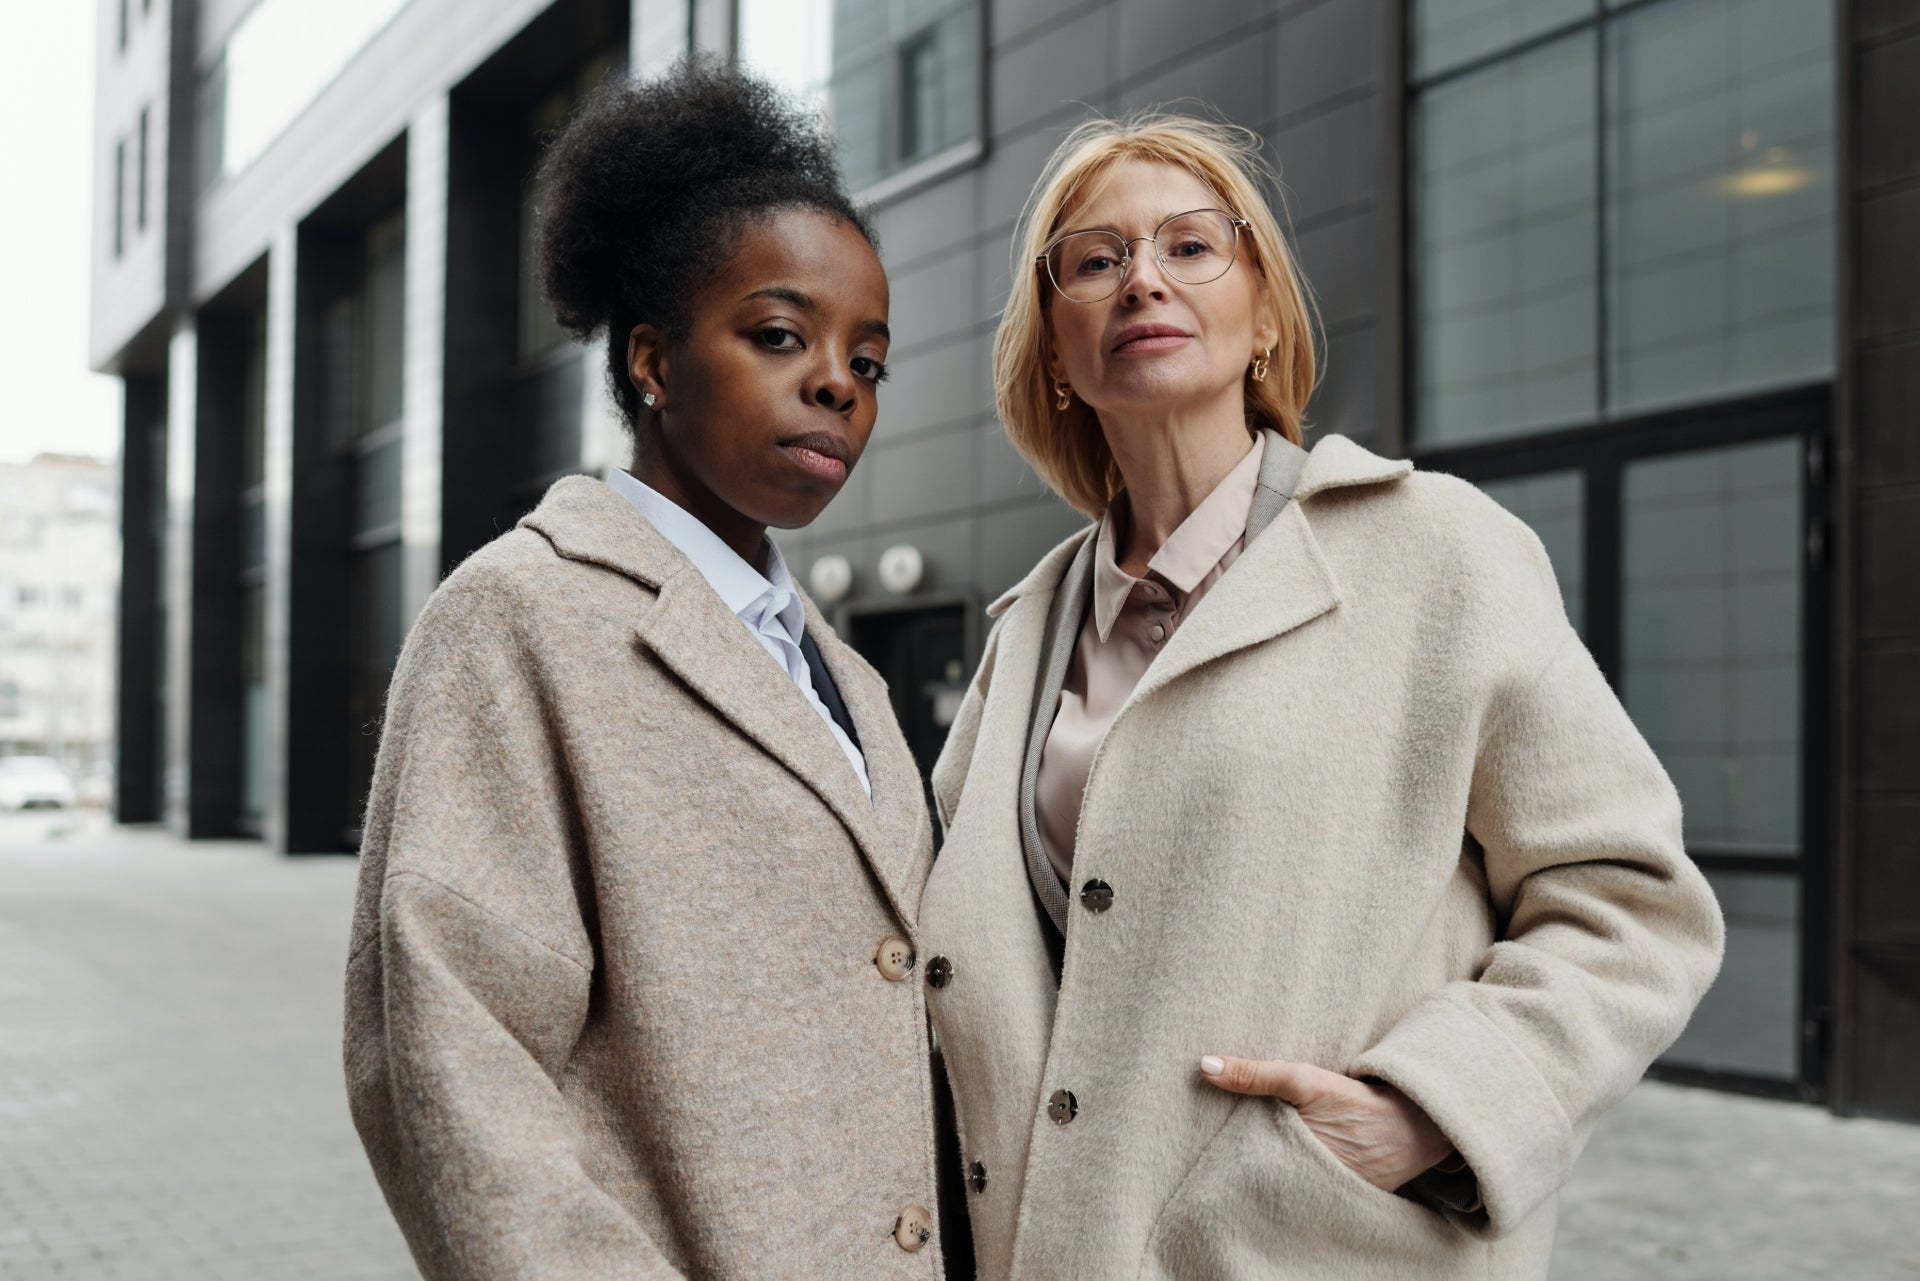 Two women look into the camera with serious looks on their faces.